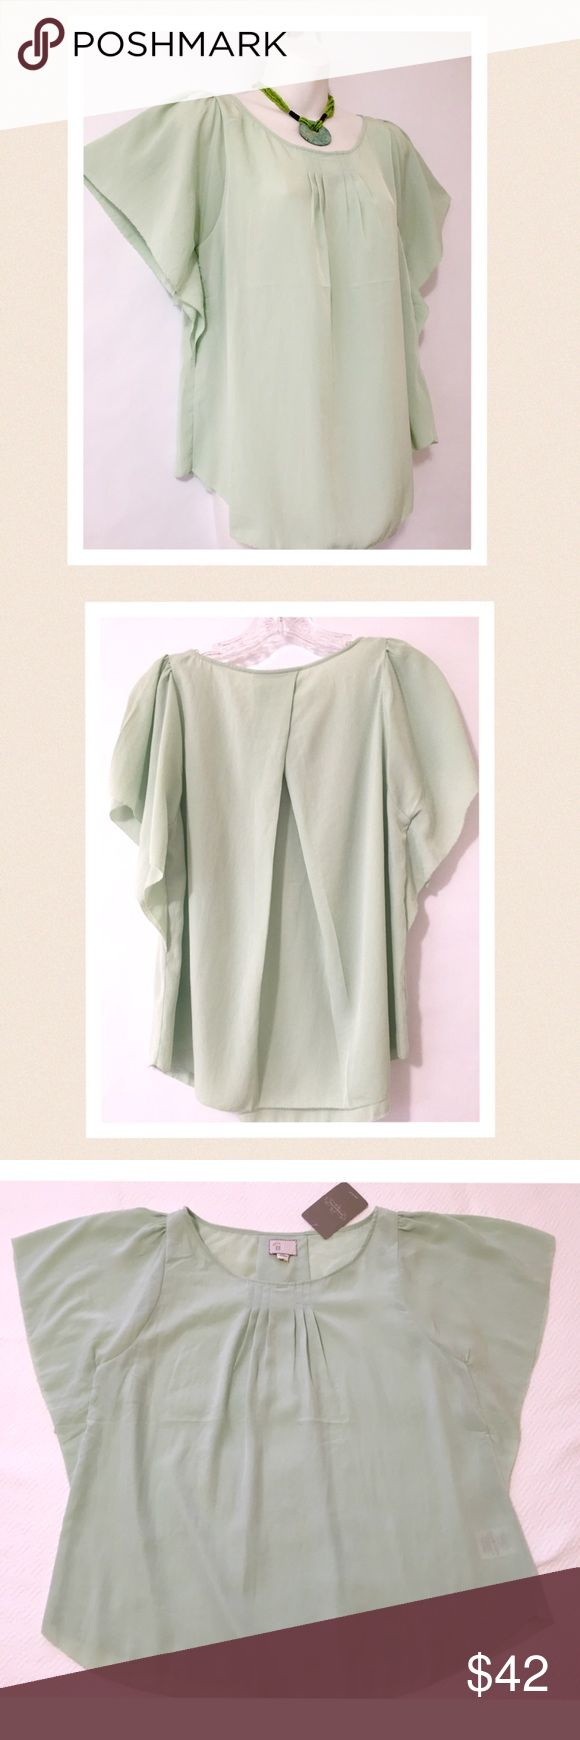 """Anthropologie mint green top. New with tags Soft and ultra-feminine mint green top. Gentle pleats at the scoop neck and large pleat at the back create a flowy feel and design. Raw edge hem and raw edge on batwing sleeves. Perfect condition. 🔹bust 19"""" across the front armpit to armpit🔹length 23"""" The tag says size 00 but the cut, design and measurements indicate that this top could fit sizes xtra small through medium. Anthropologie Tops"""